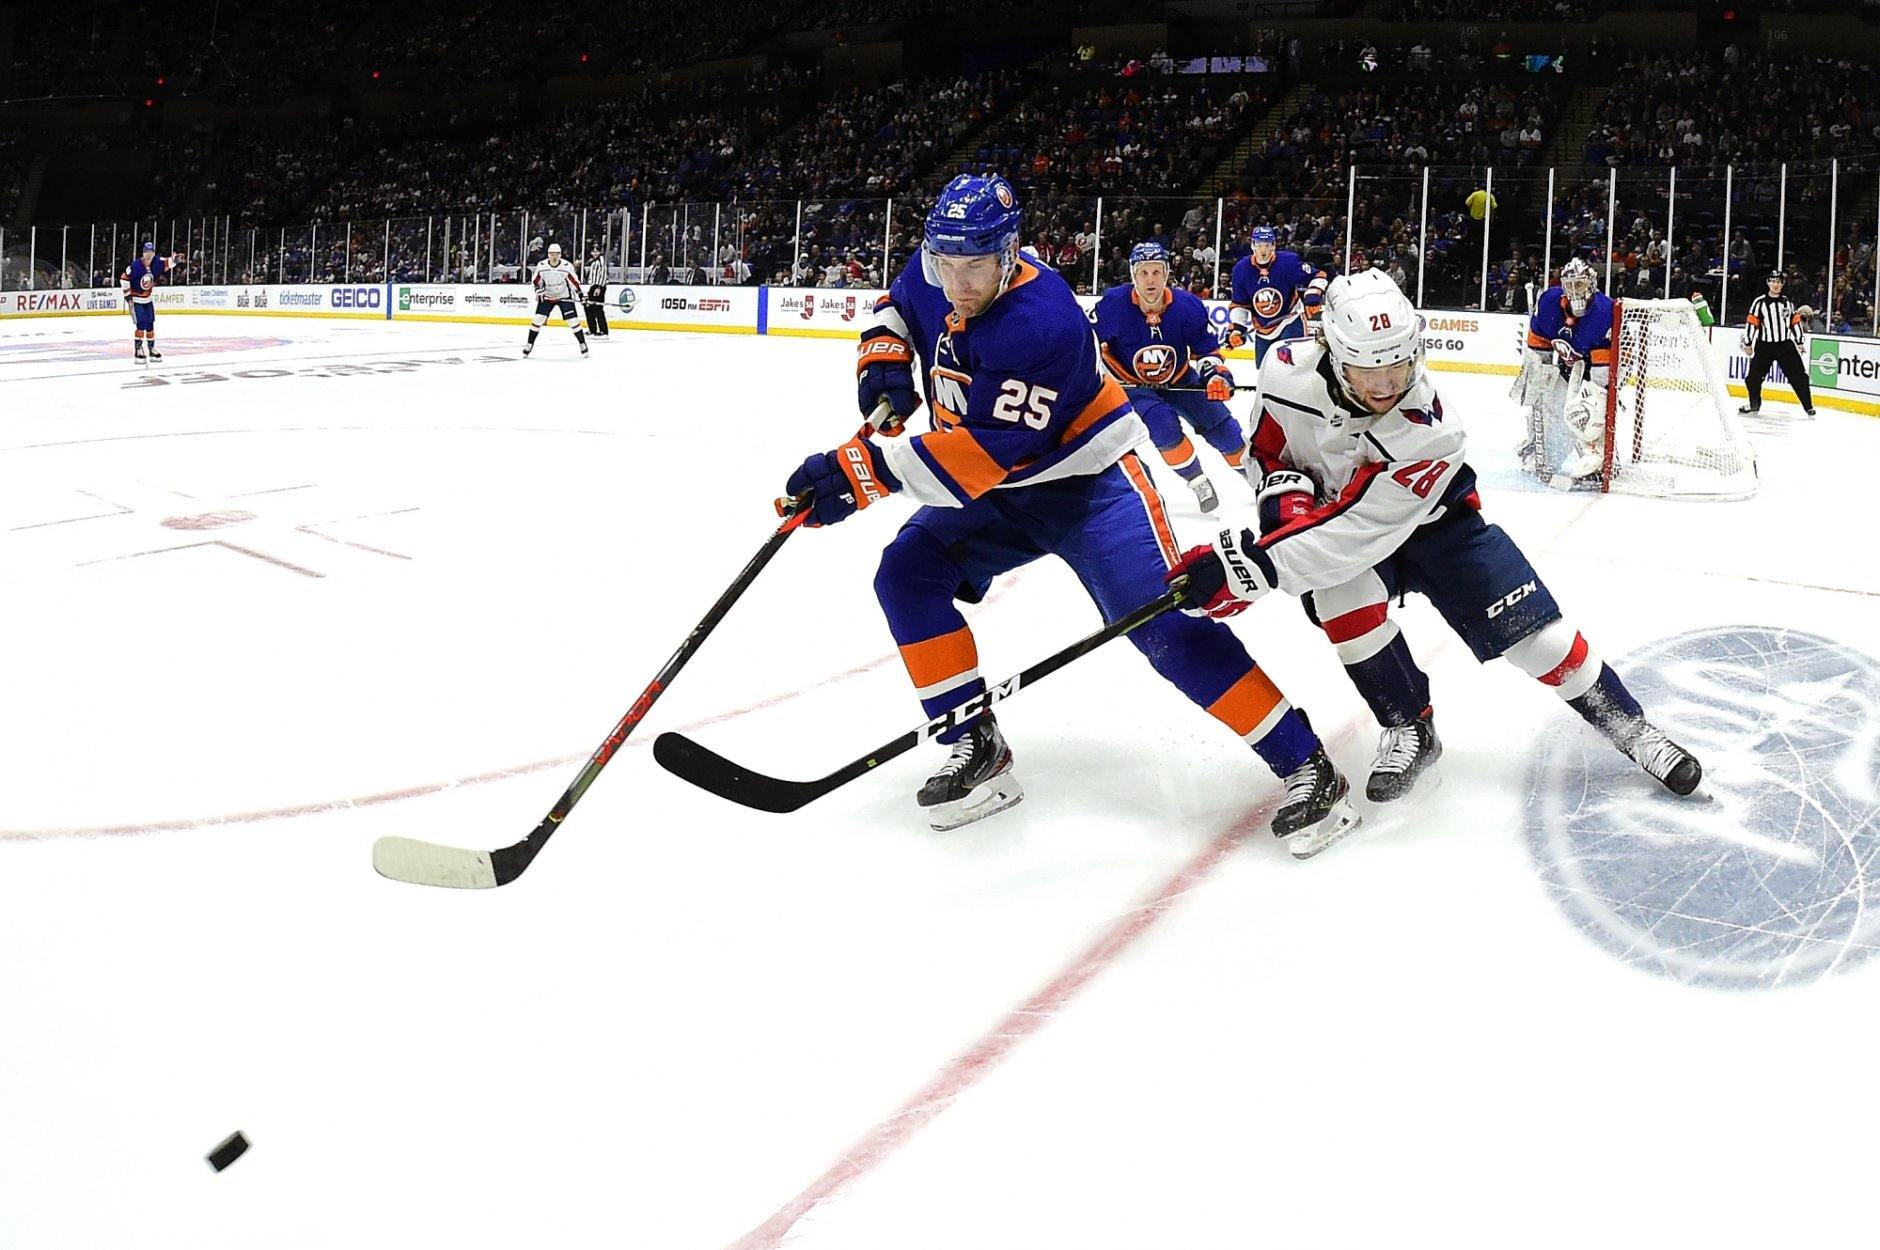 New York Islanders defenseman Devon Toews (25) is defended by Washington Capitals left wing Brendan Leipsic (28) during the first period of an NHL hockey game, Friday, Oct. 4, 2019, in Uniondale, N.Y. (AP Photo/Steven Ryan)